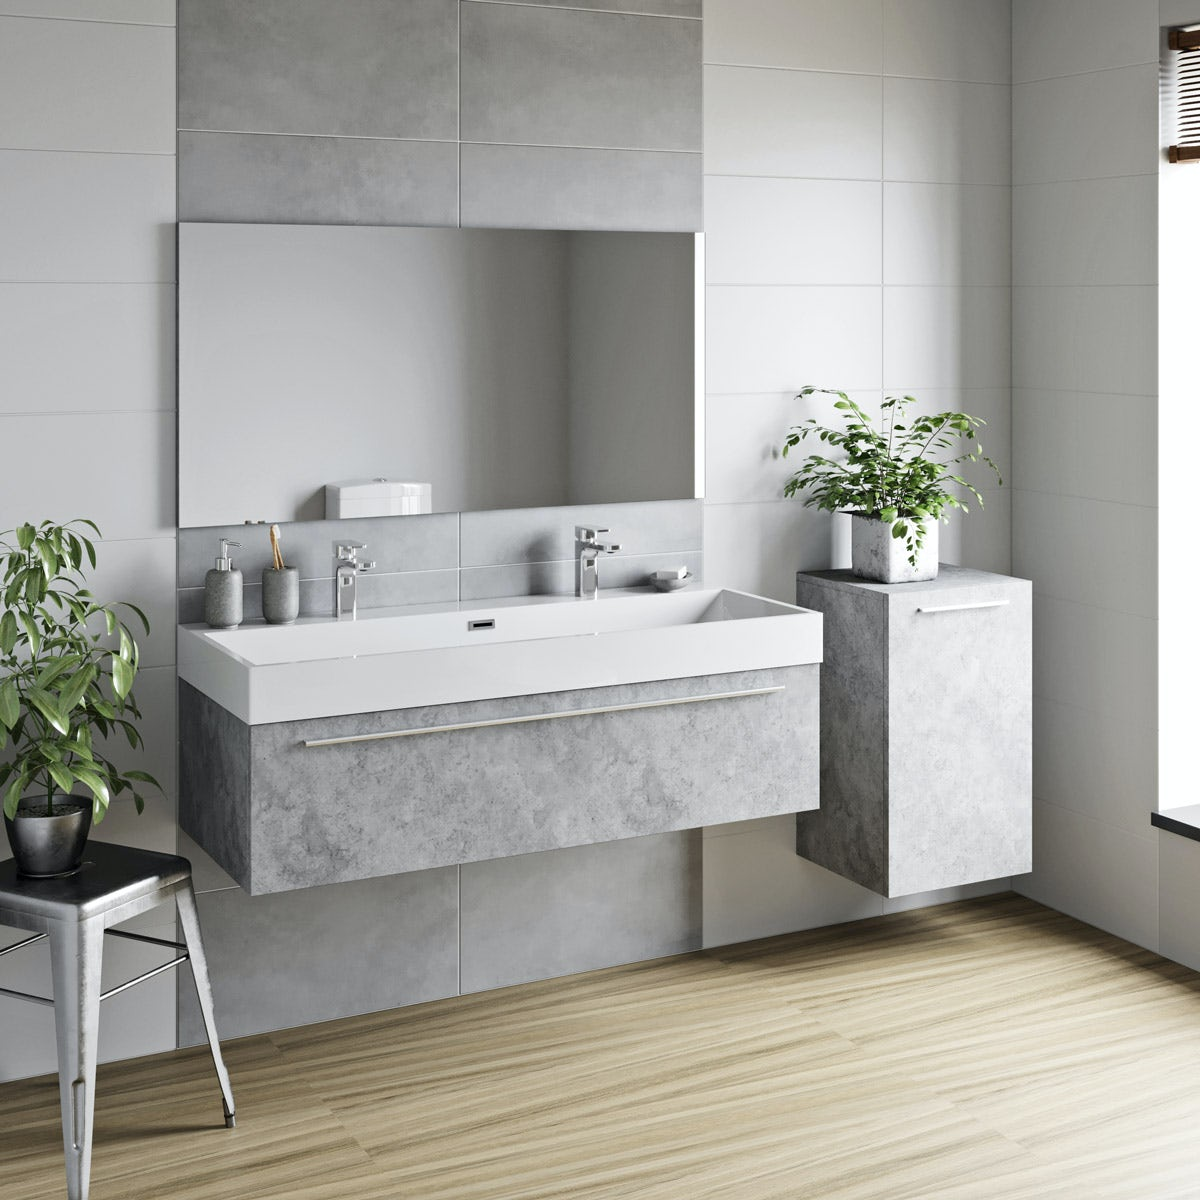 new concept f8a1e 12a4a Mode Morris dark concrete grey furniture package with wall hung vanity unit  1200mm